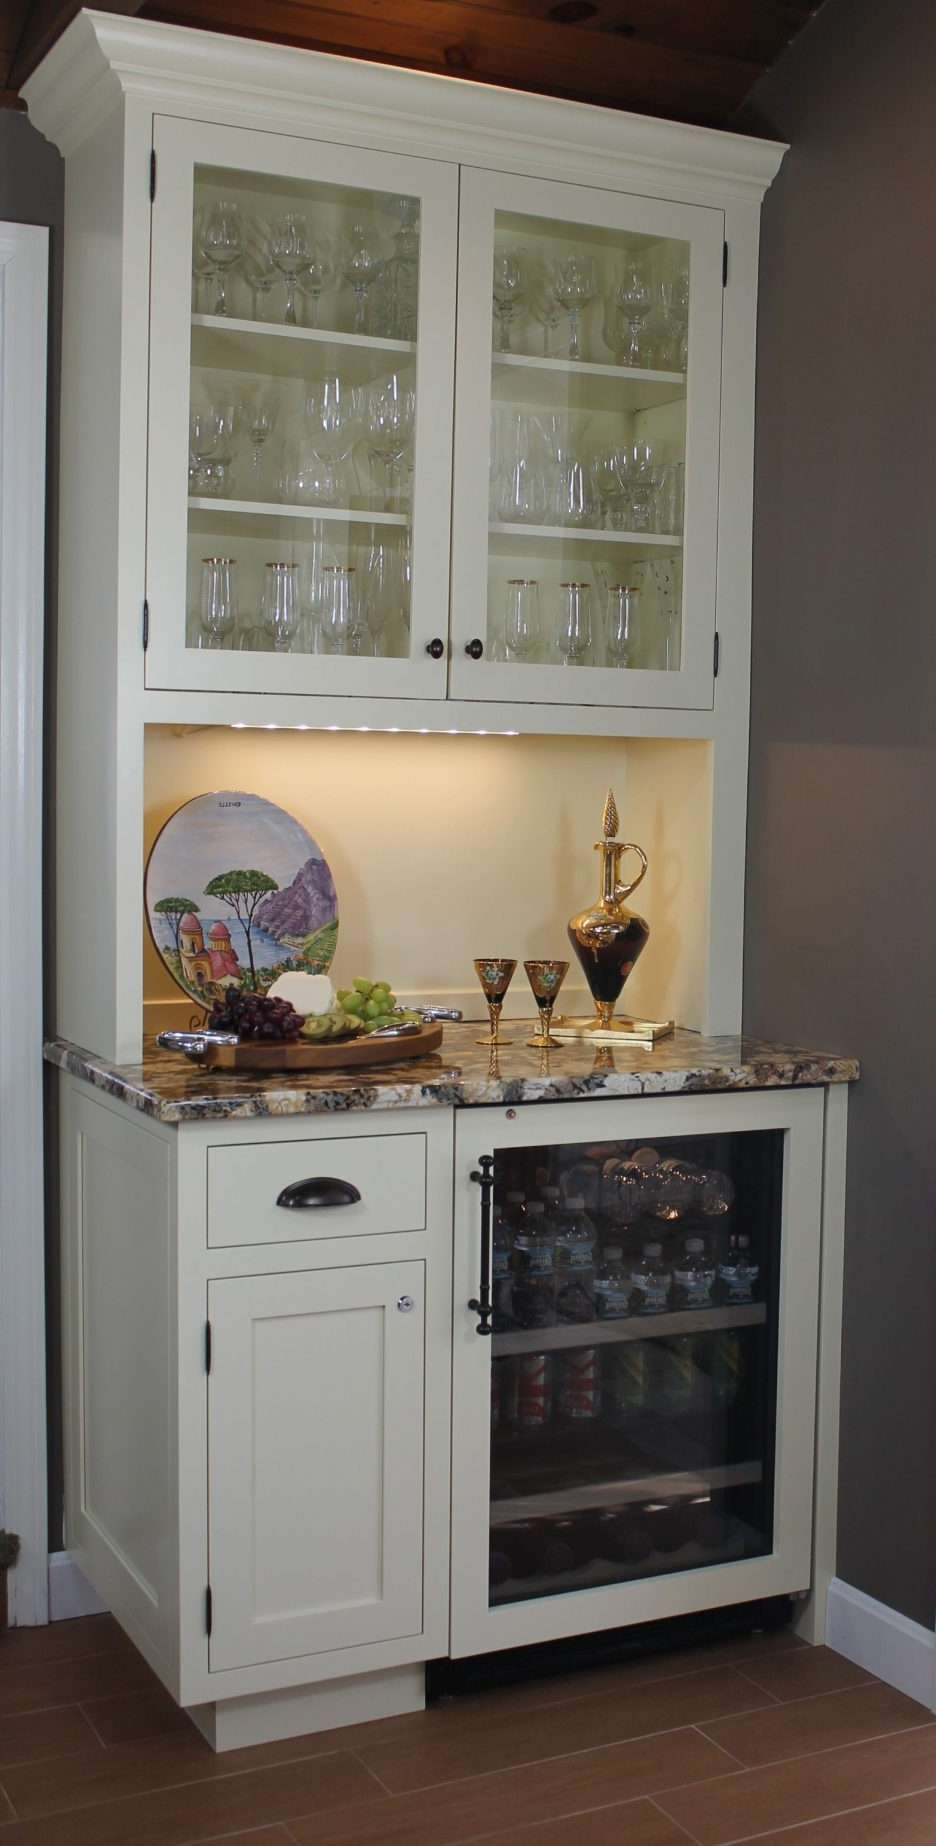 Skinny Sideboard Kitchen Sideboards And Buffets Small Kitchen Regarding Kitchen Sideboards (View 19 of 20)